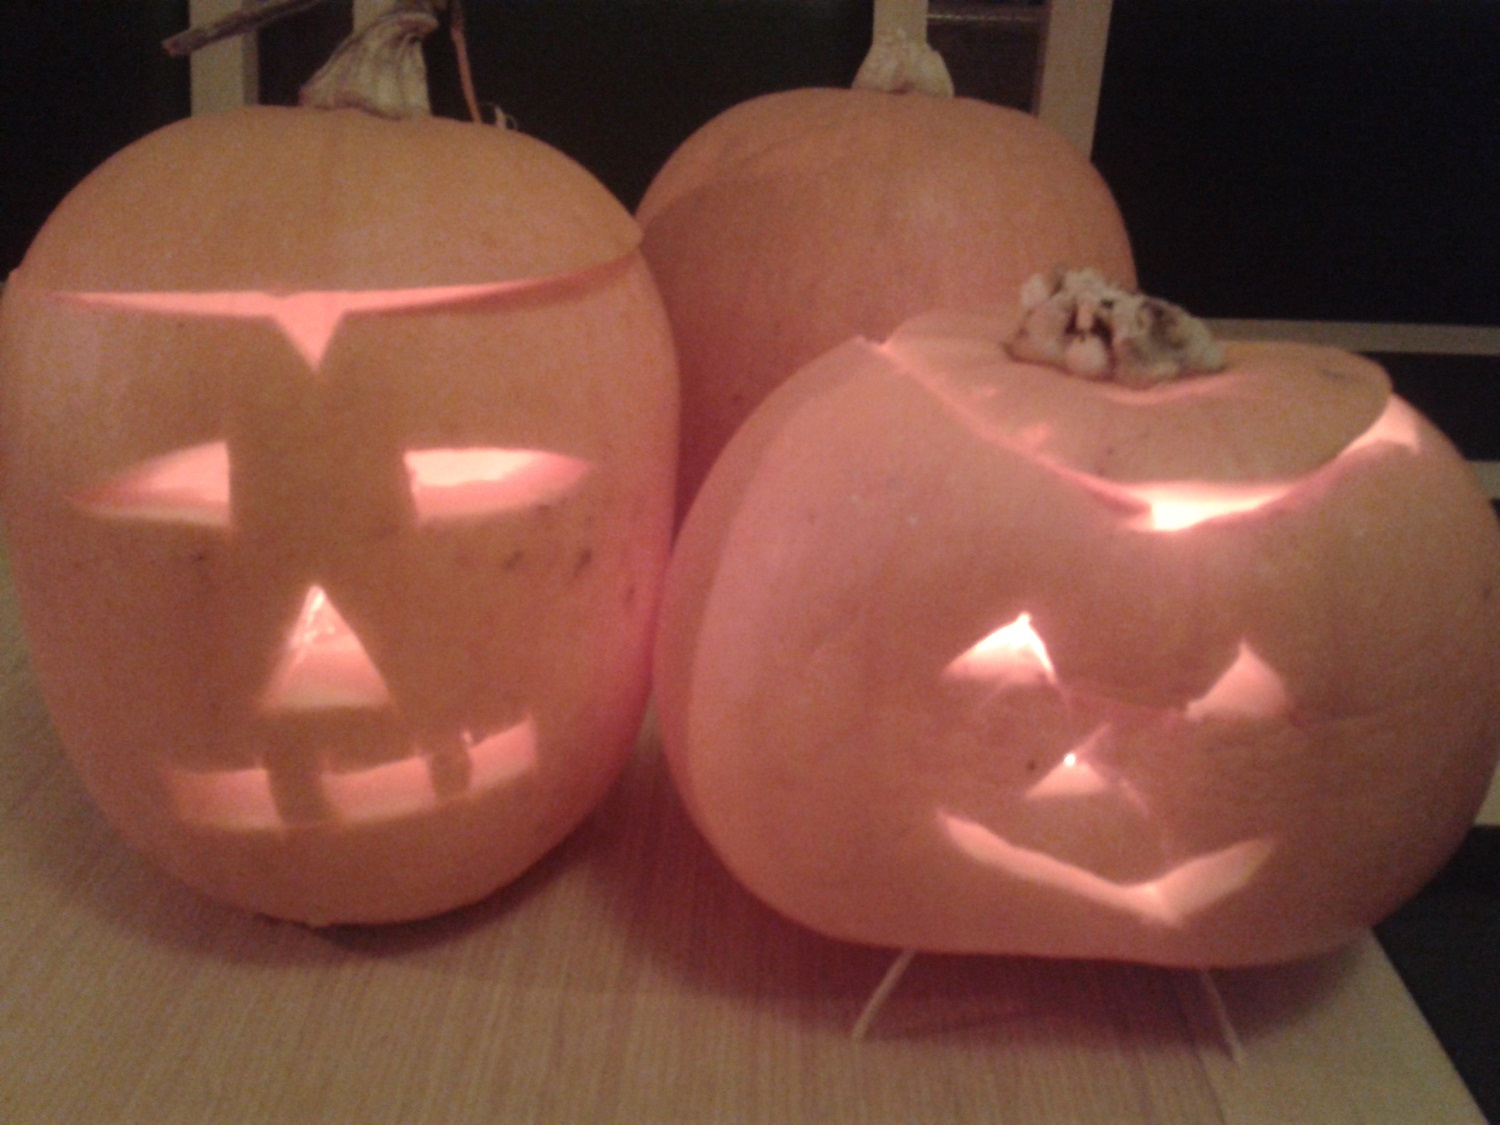 Home-grown pumpkins make Hallowe'en lanterns